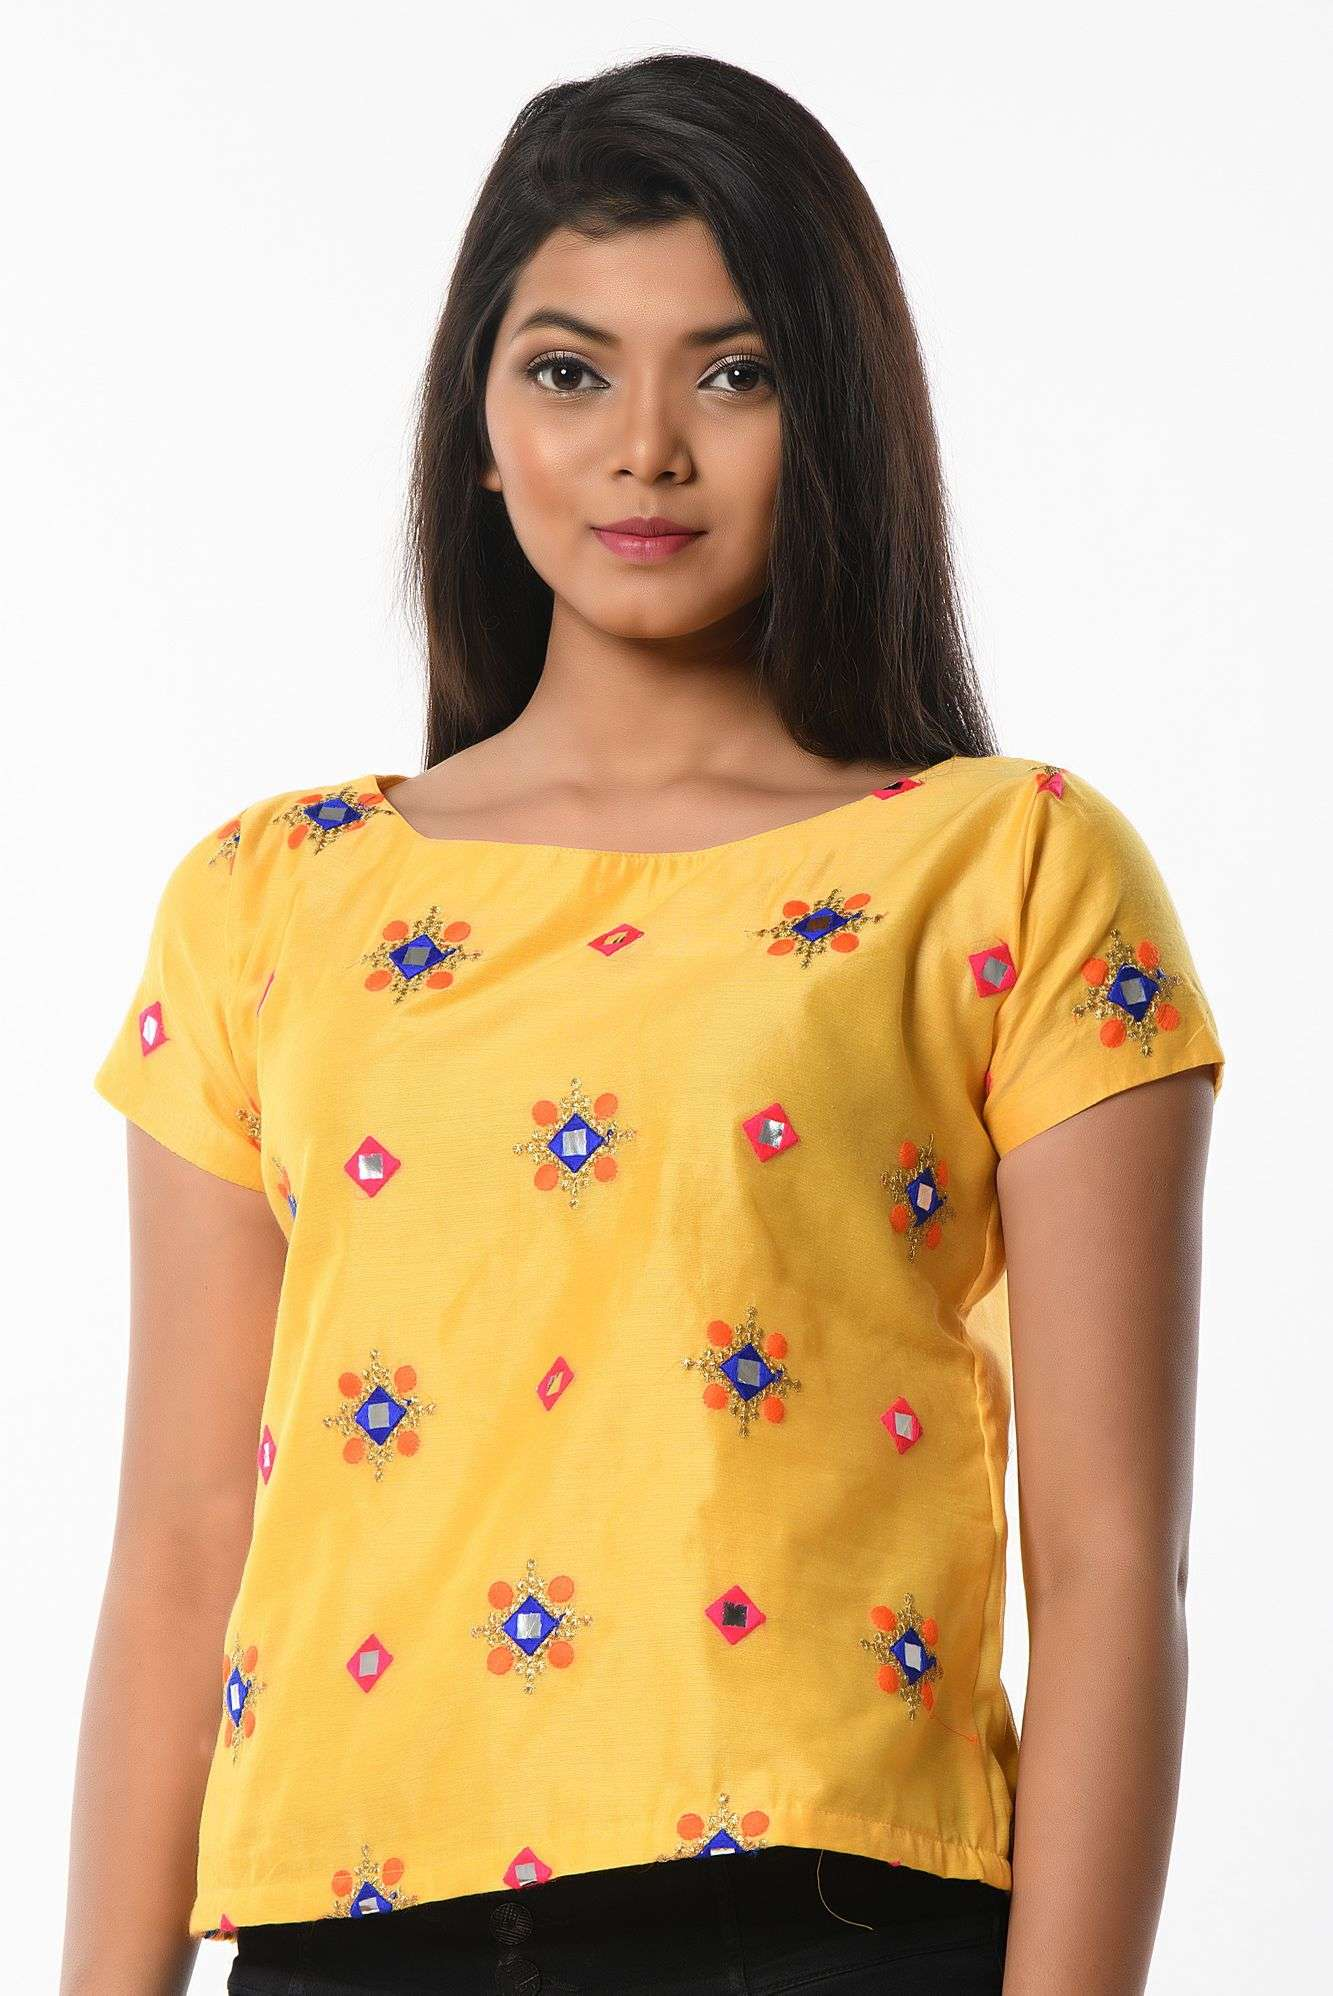 YELLOW COLORED TOP CUM BLOUSES